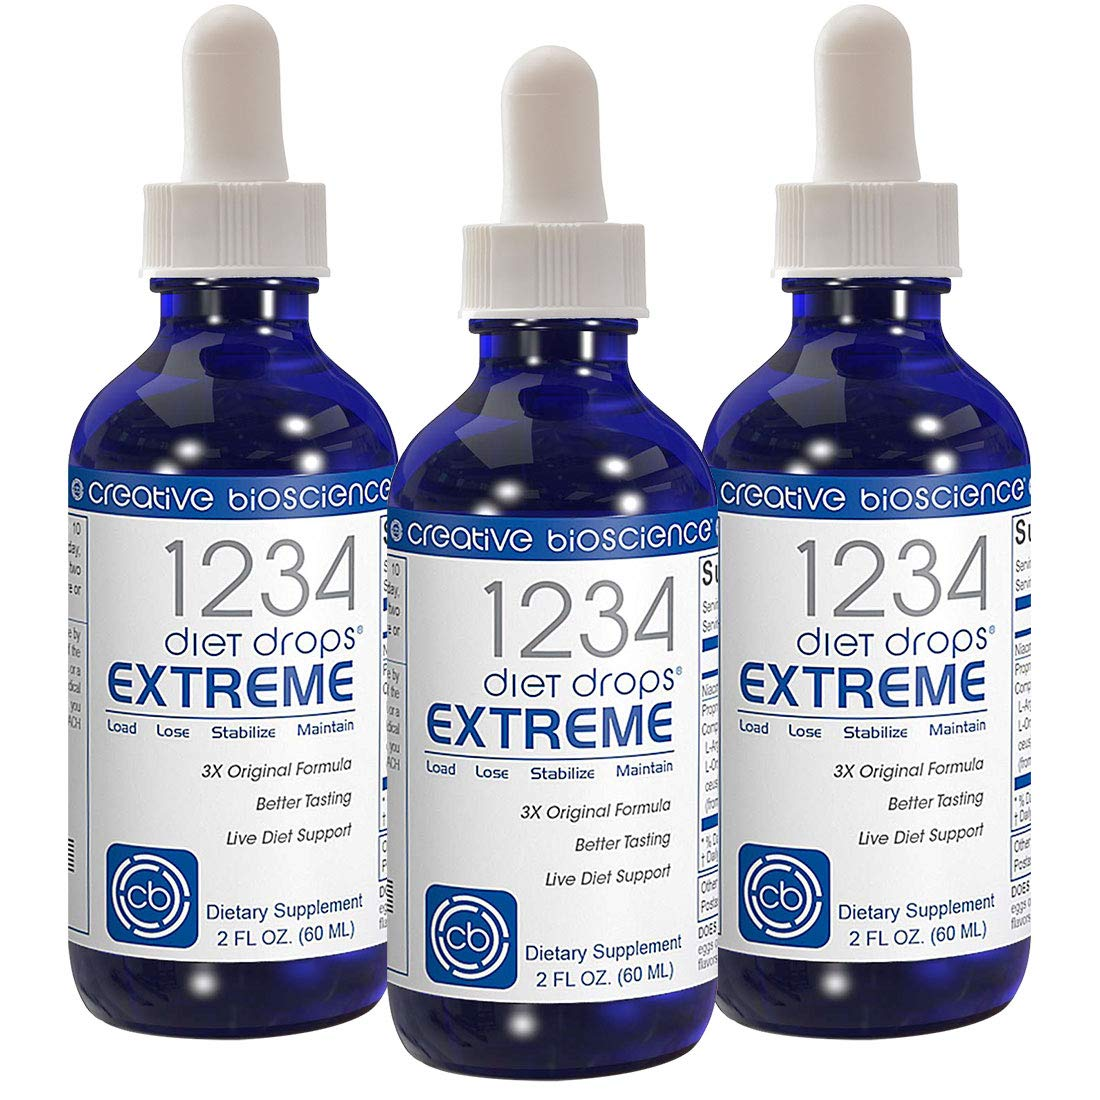 1234 Diet Drops Extreme 3 Bottle Pack by Creative Bioscience